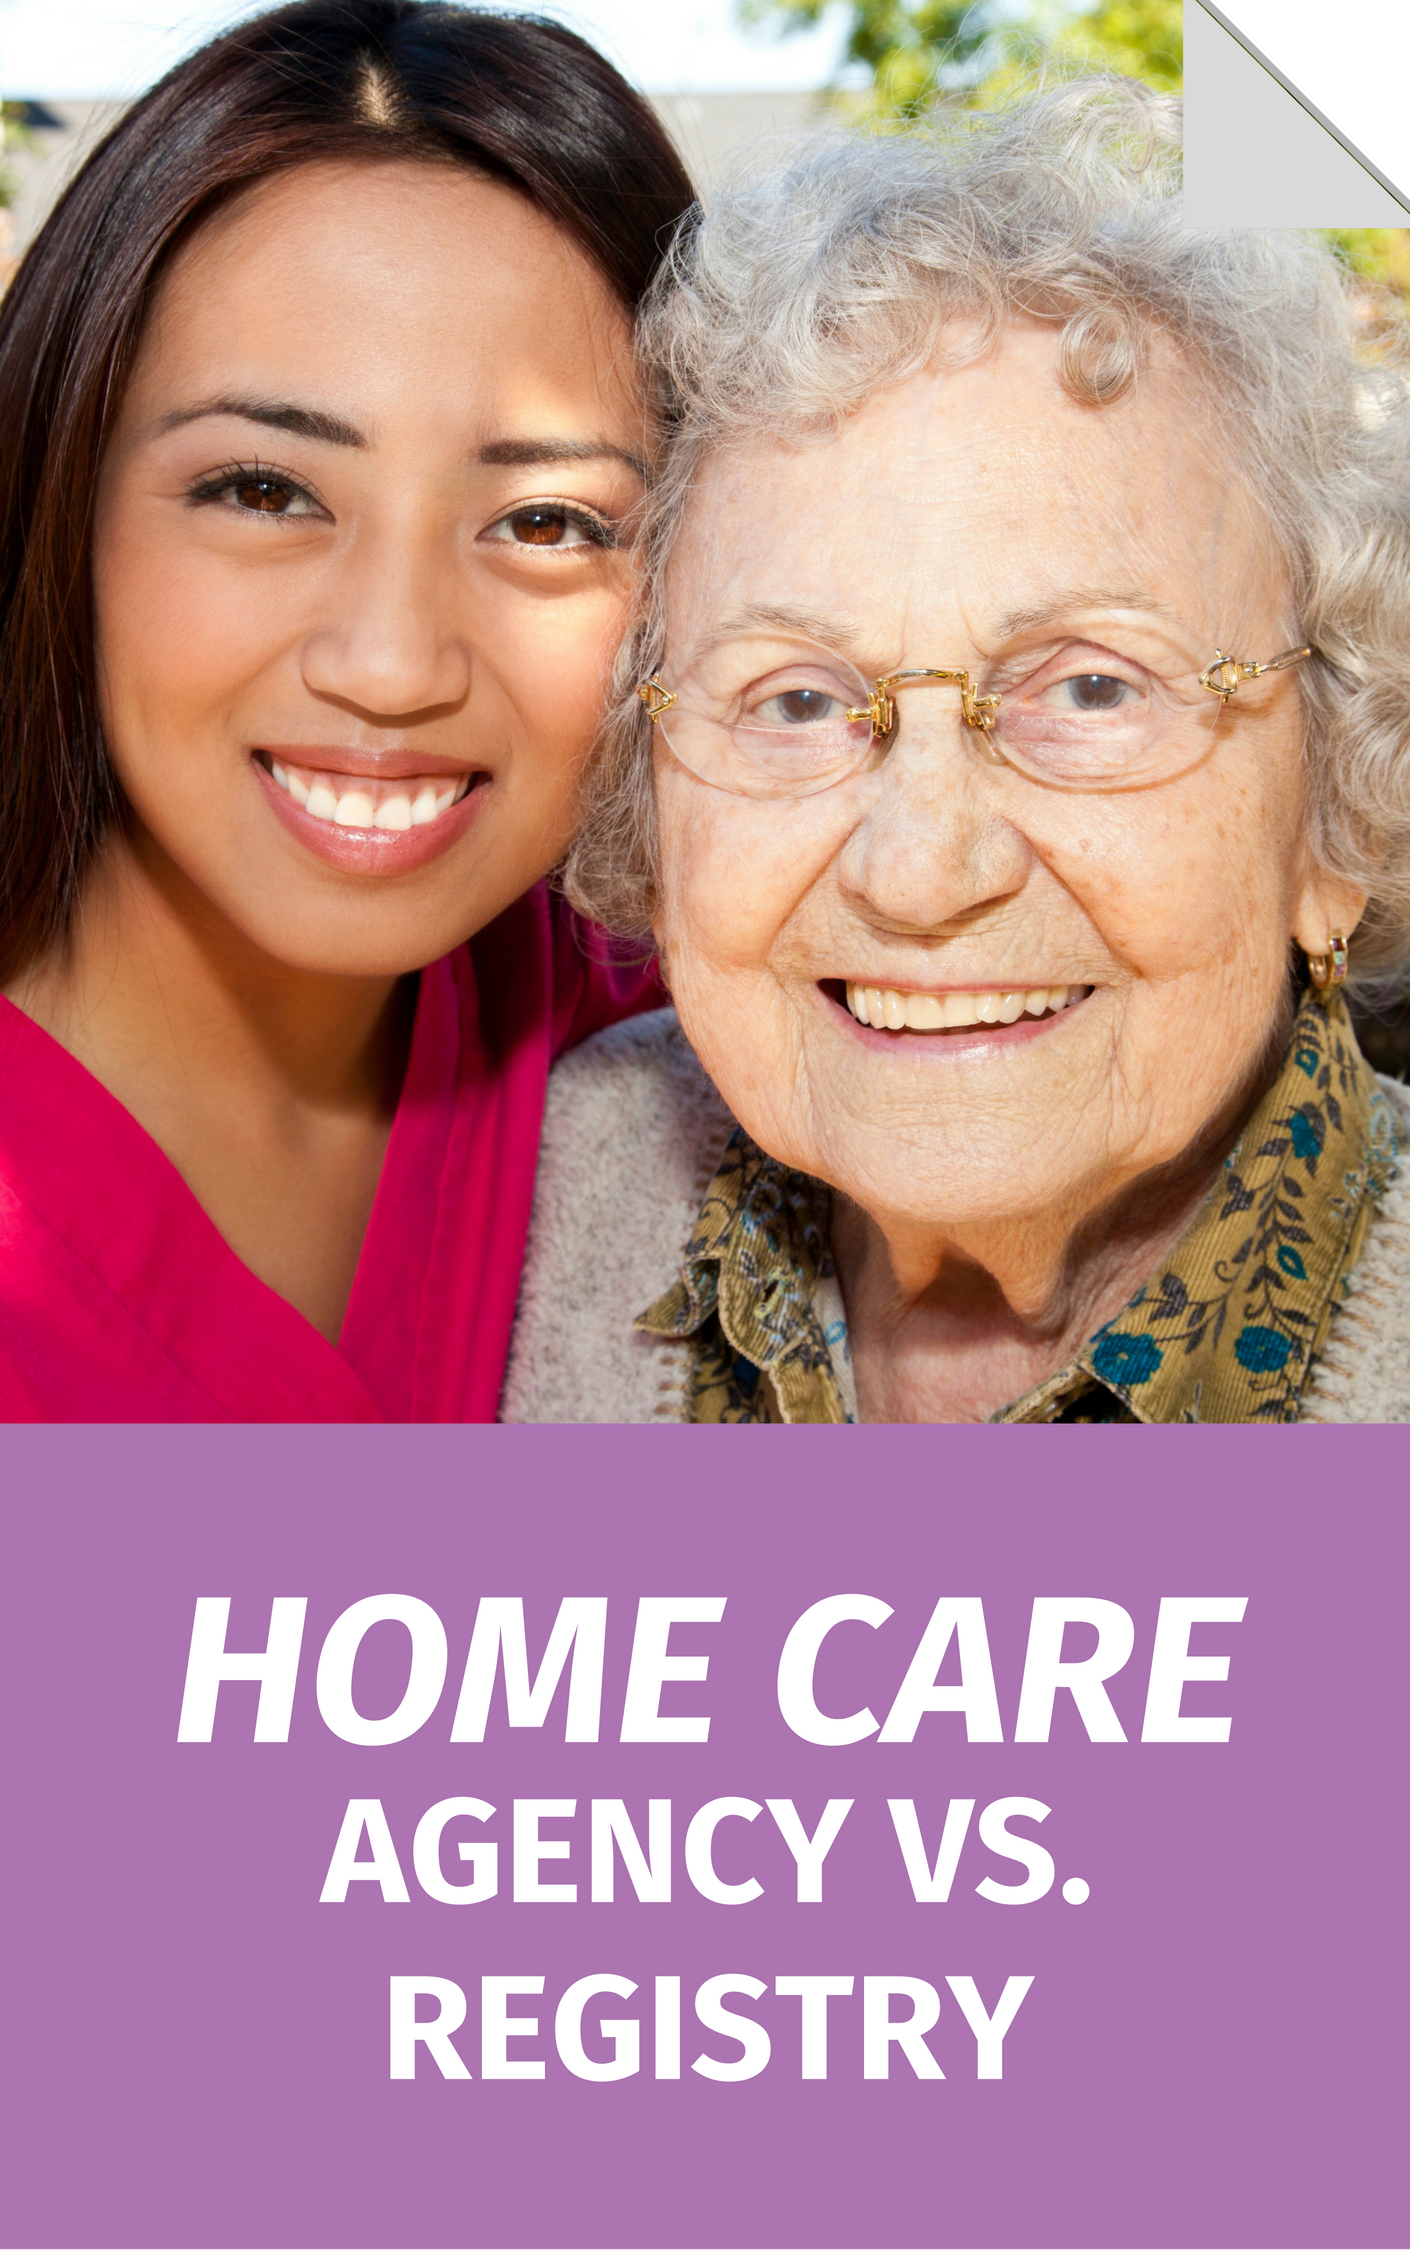 Home Care Agency vs. Registry